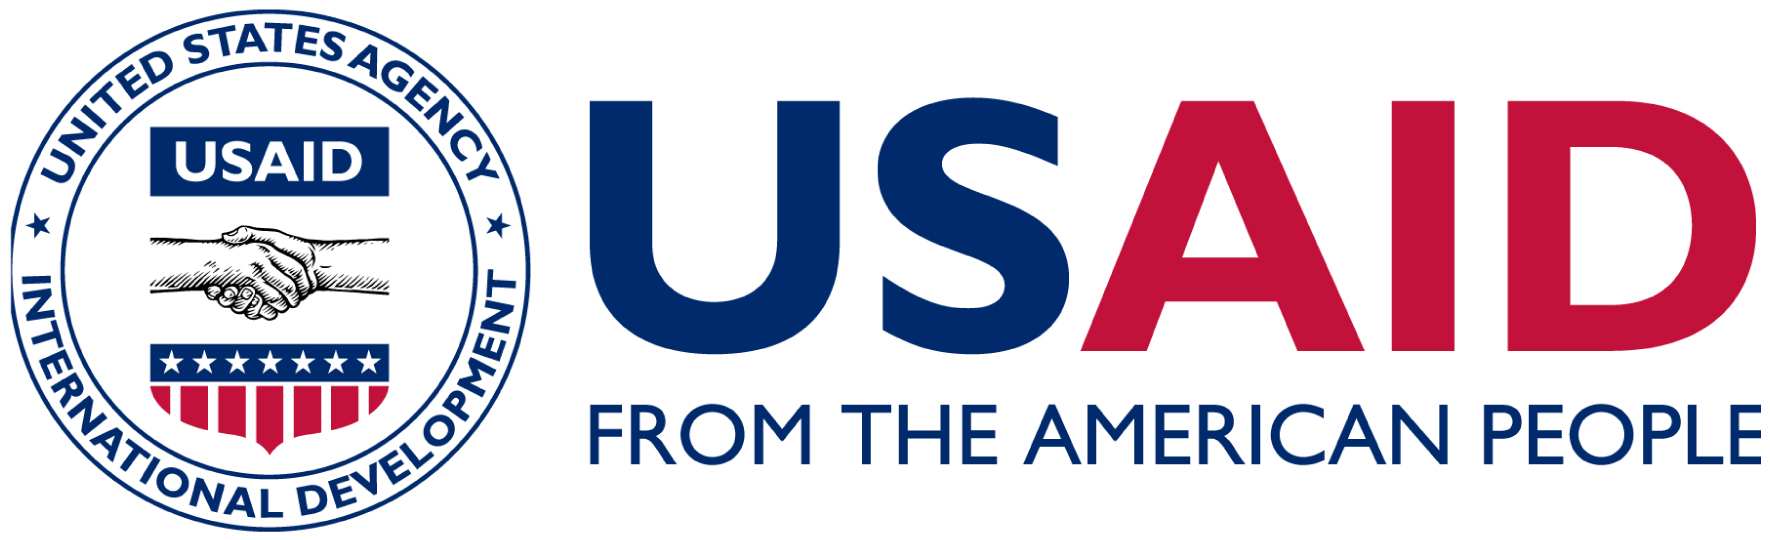 USAID: From the American People.